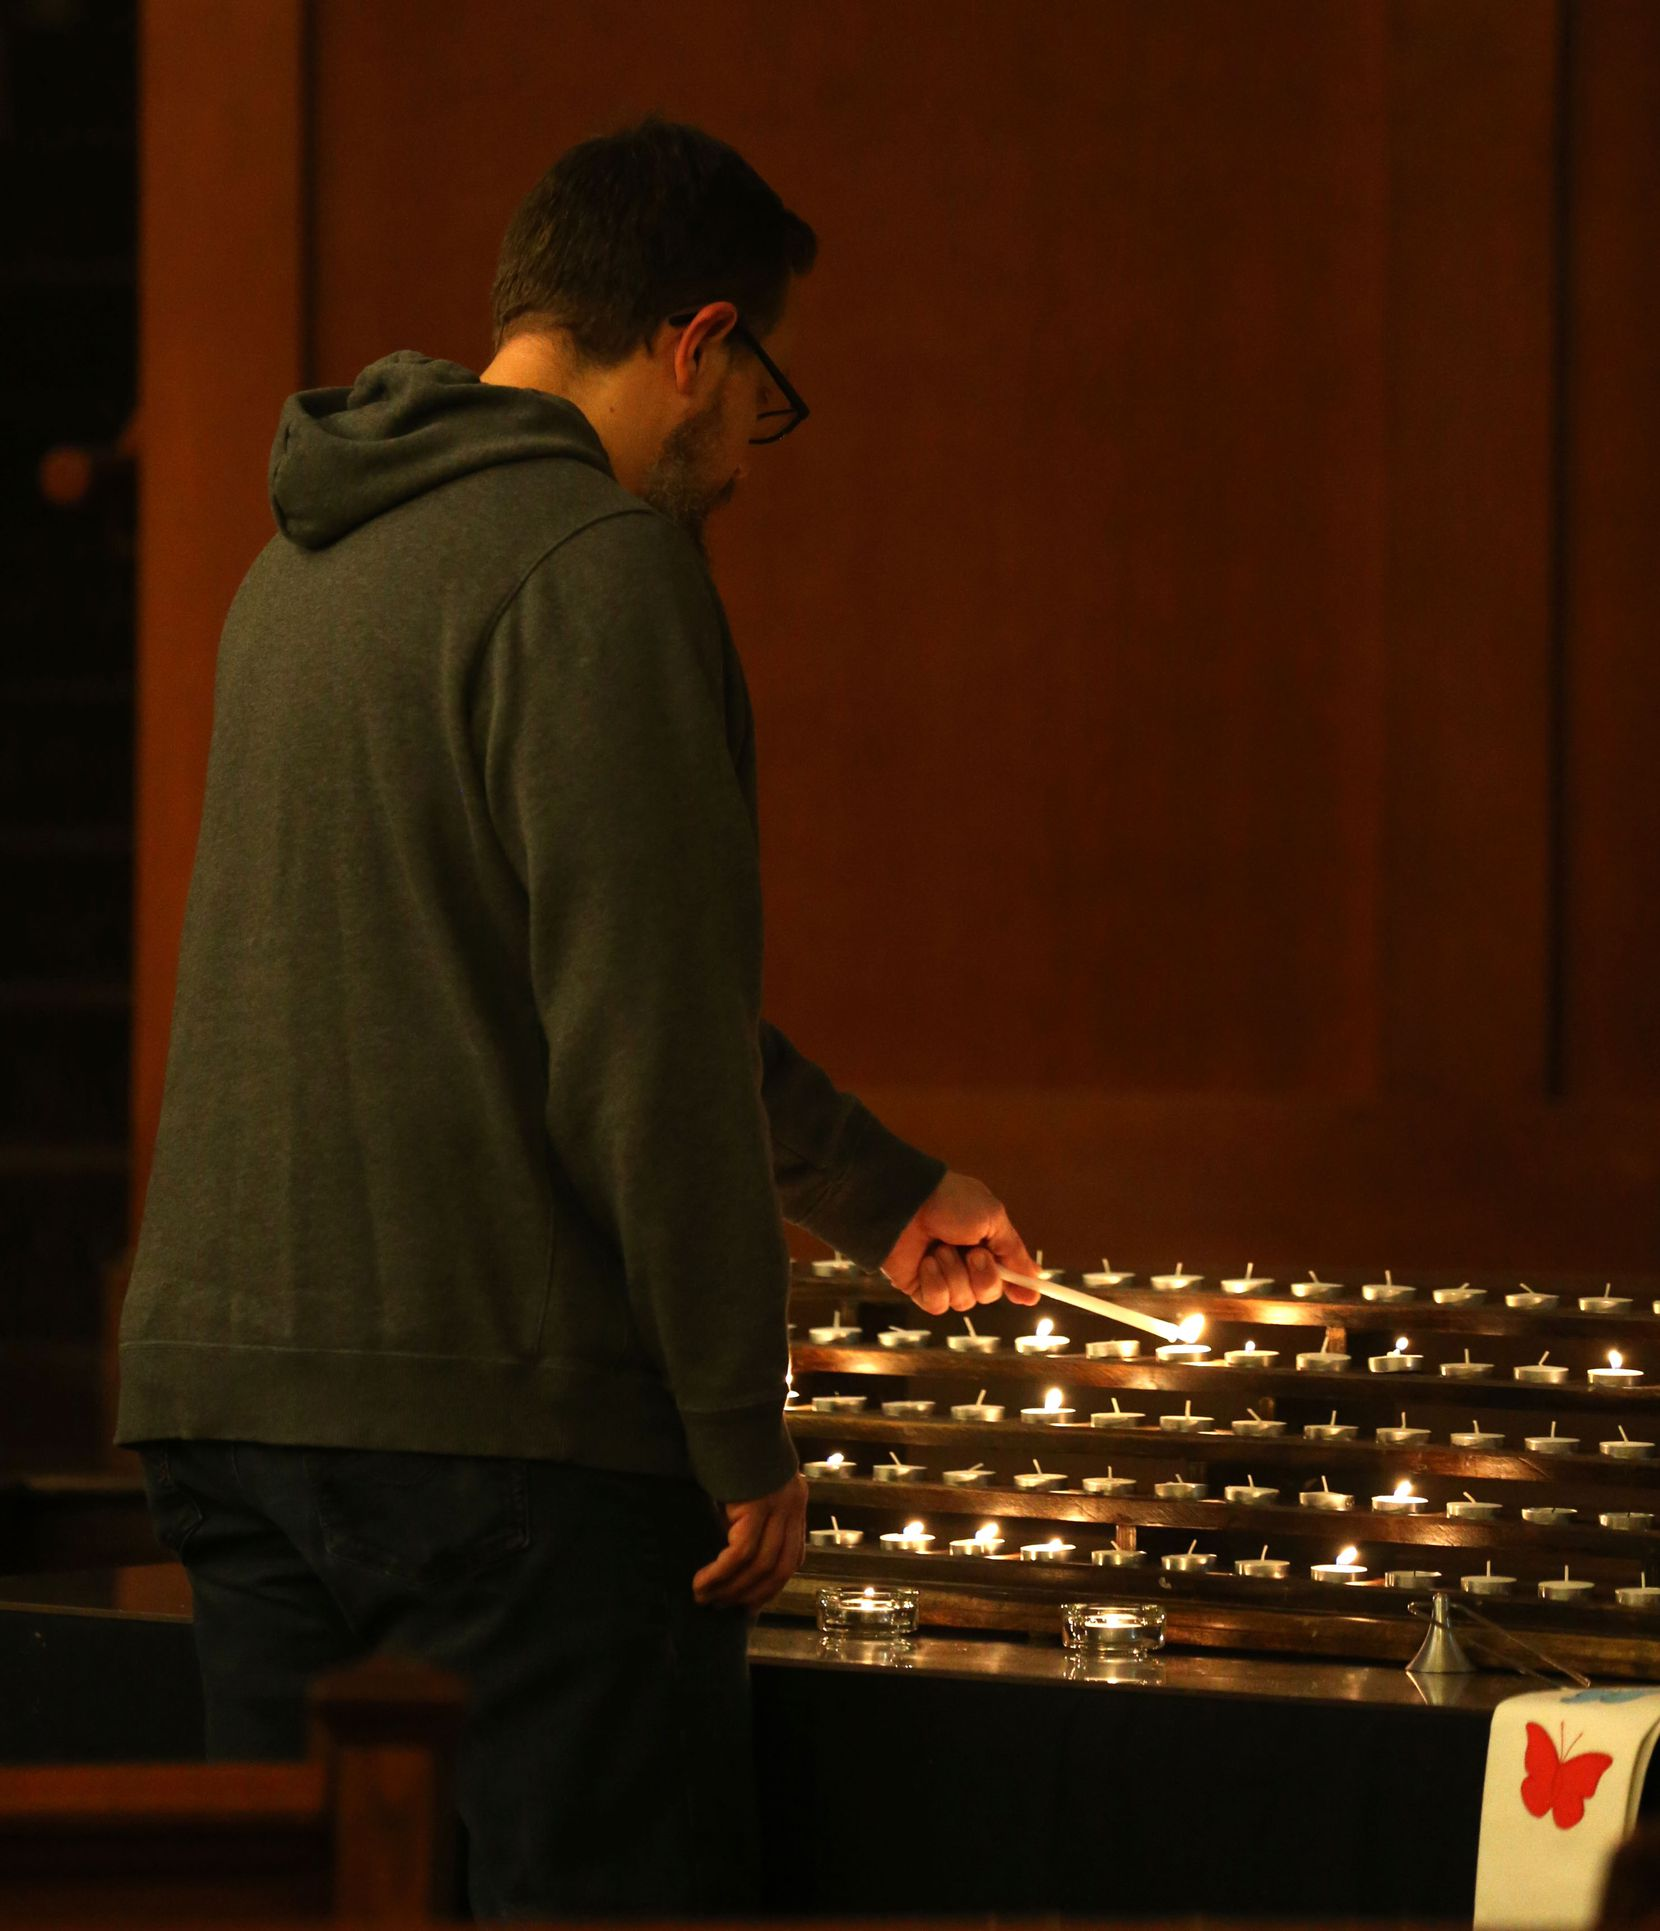 Church member J.J. Heid lights a candle in the sanctuary at Grace Avenue United Methodist Church in Frisco on Wednesday during a prayer service set up after the denomination's anti-LGBTQ vote in St. Louis.